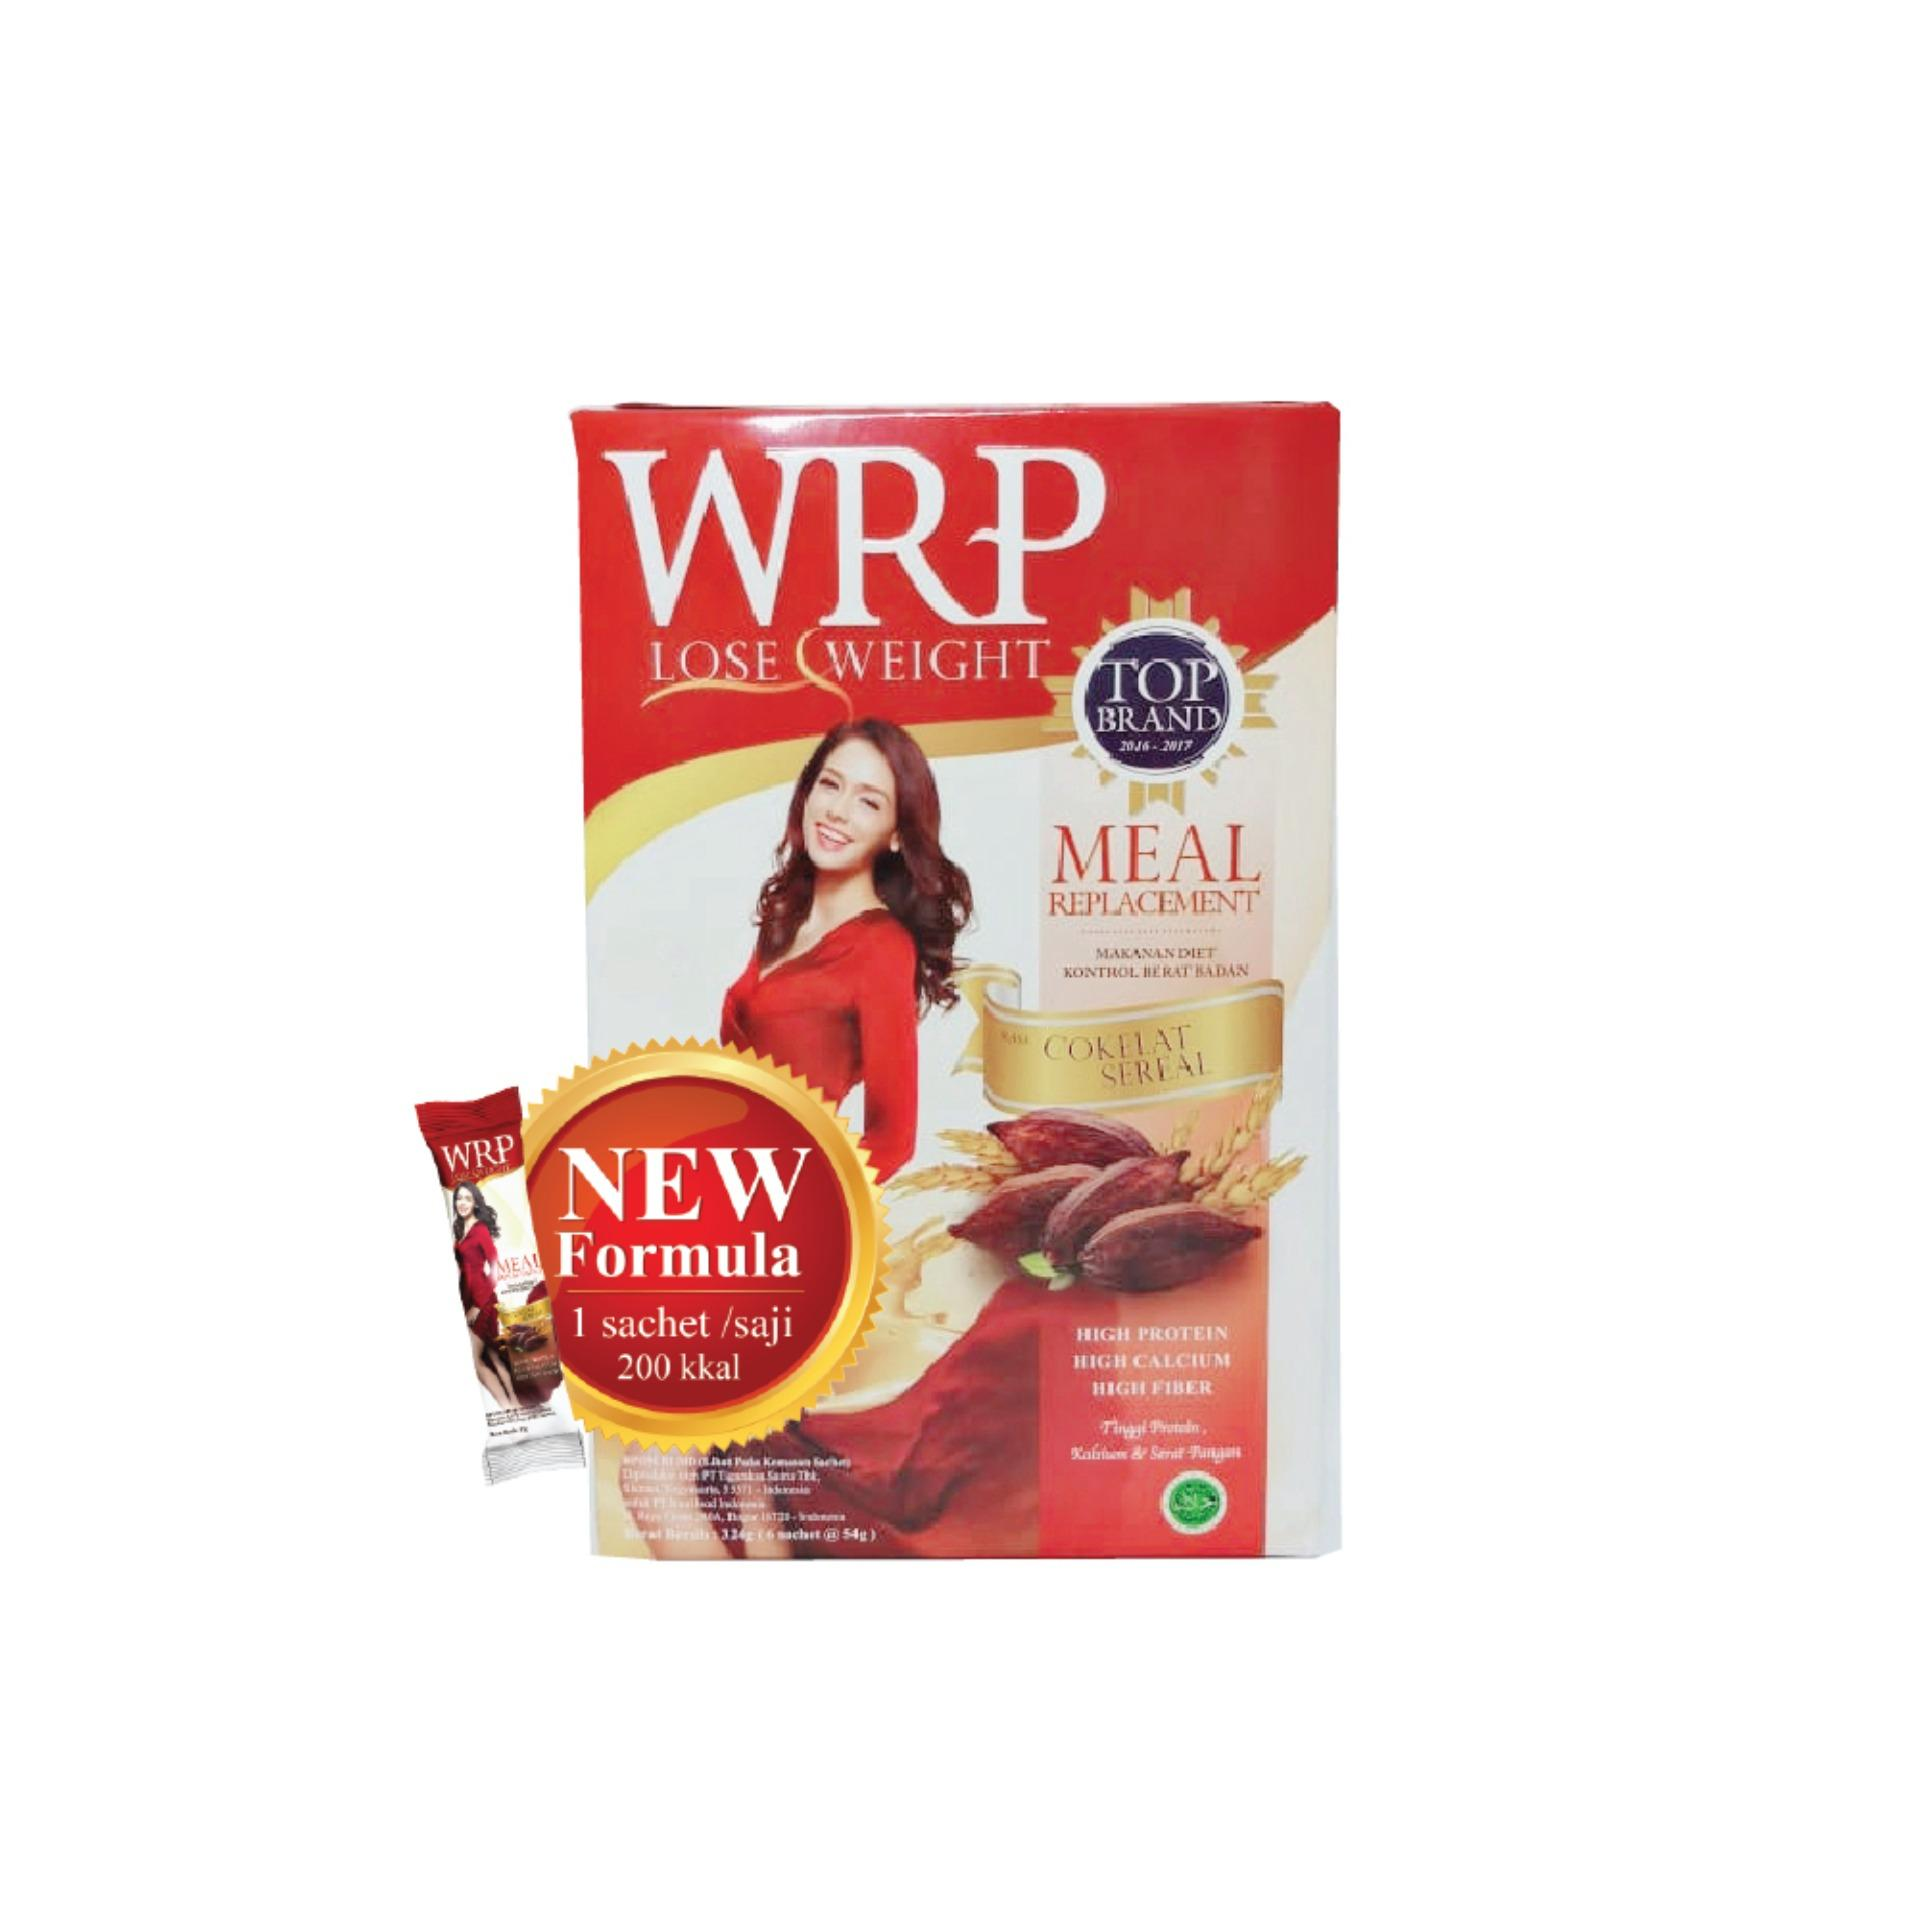 WRP Meal Replacement Chocolate Cereal 32G (6 Sachet)